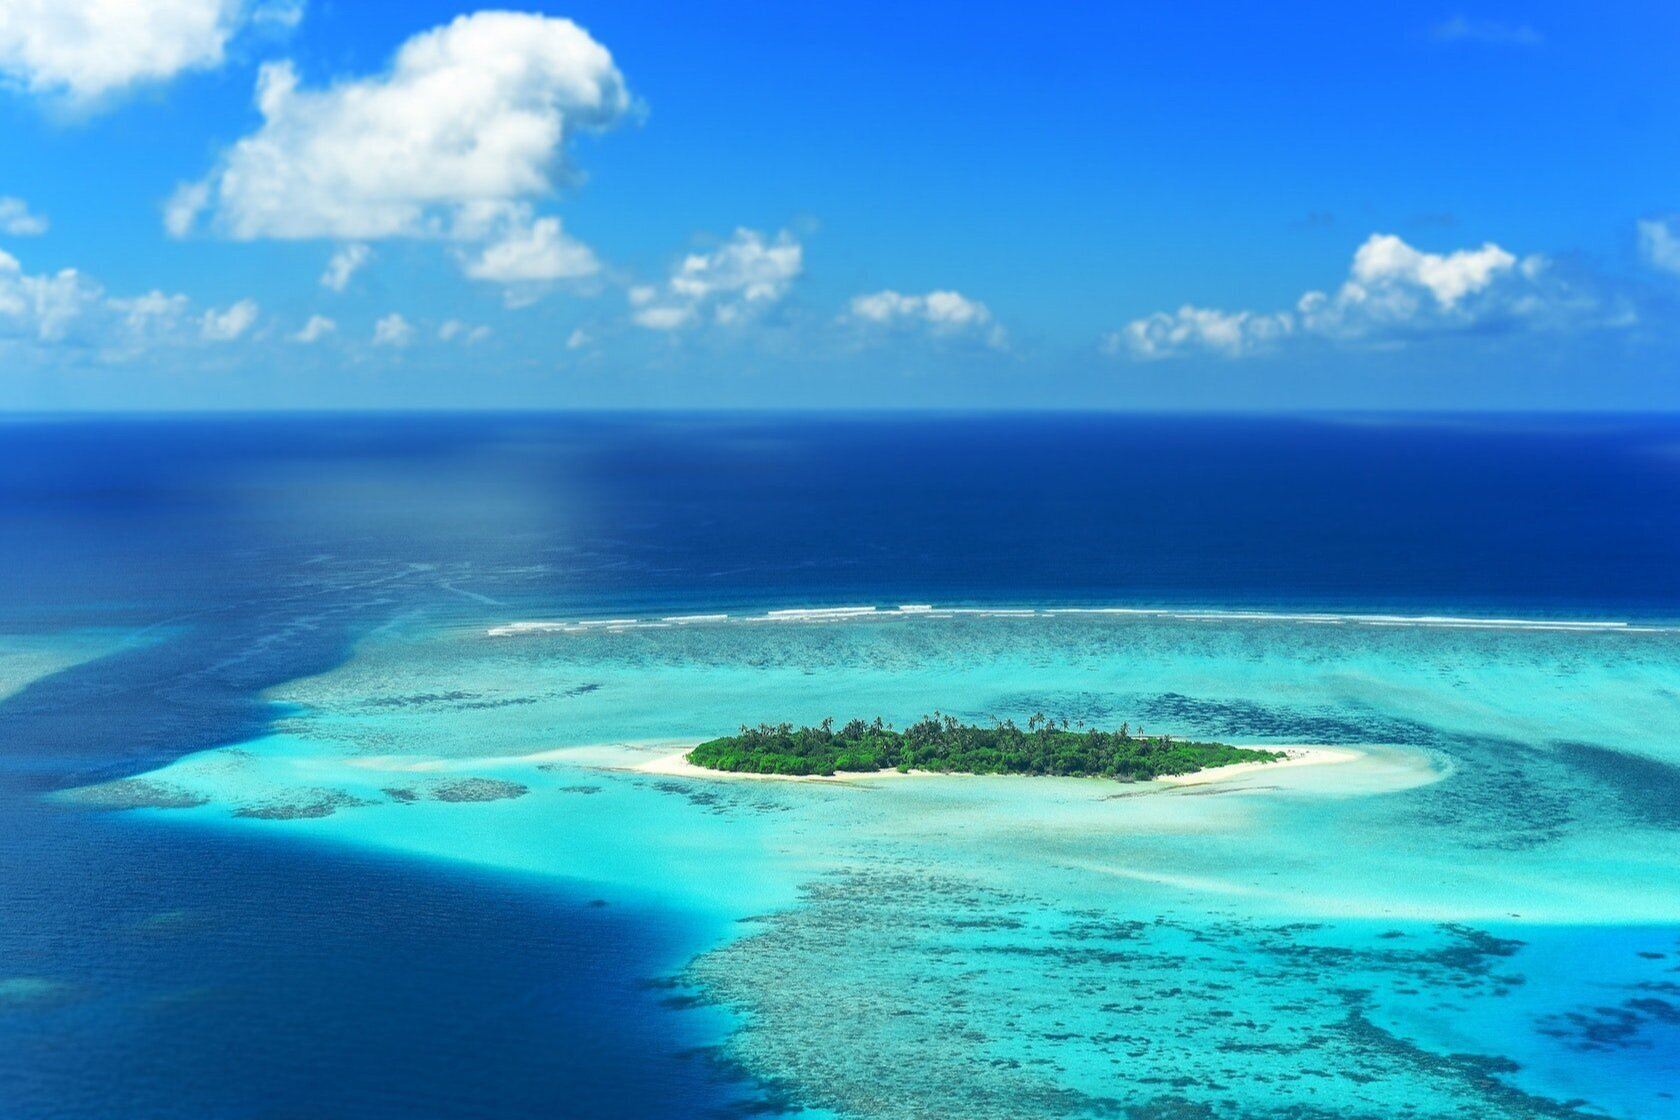 The Maldives is one of the many islands around the world at risk